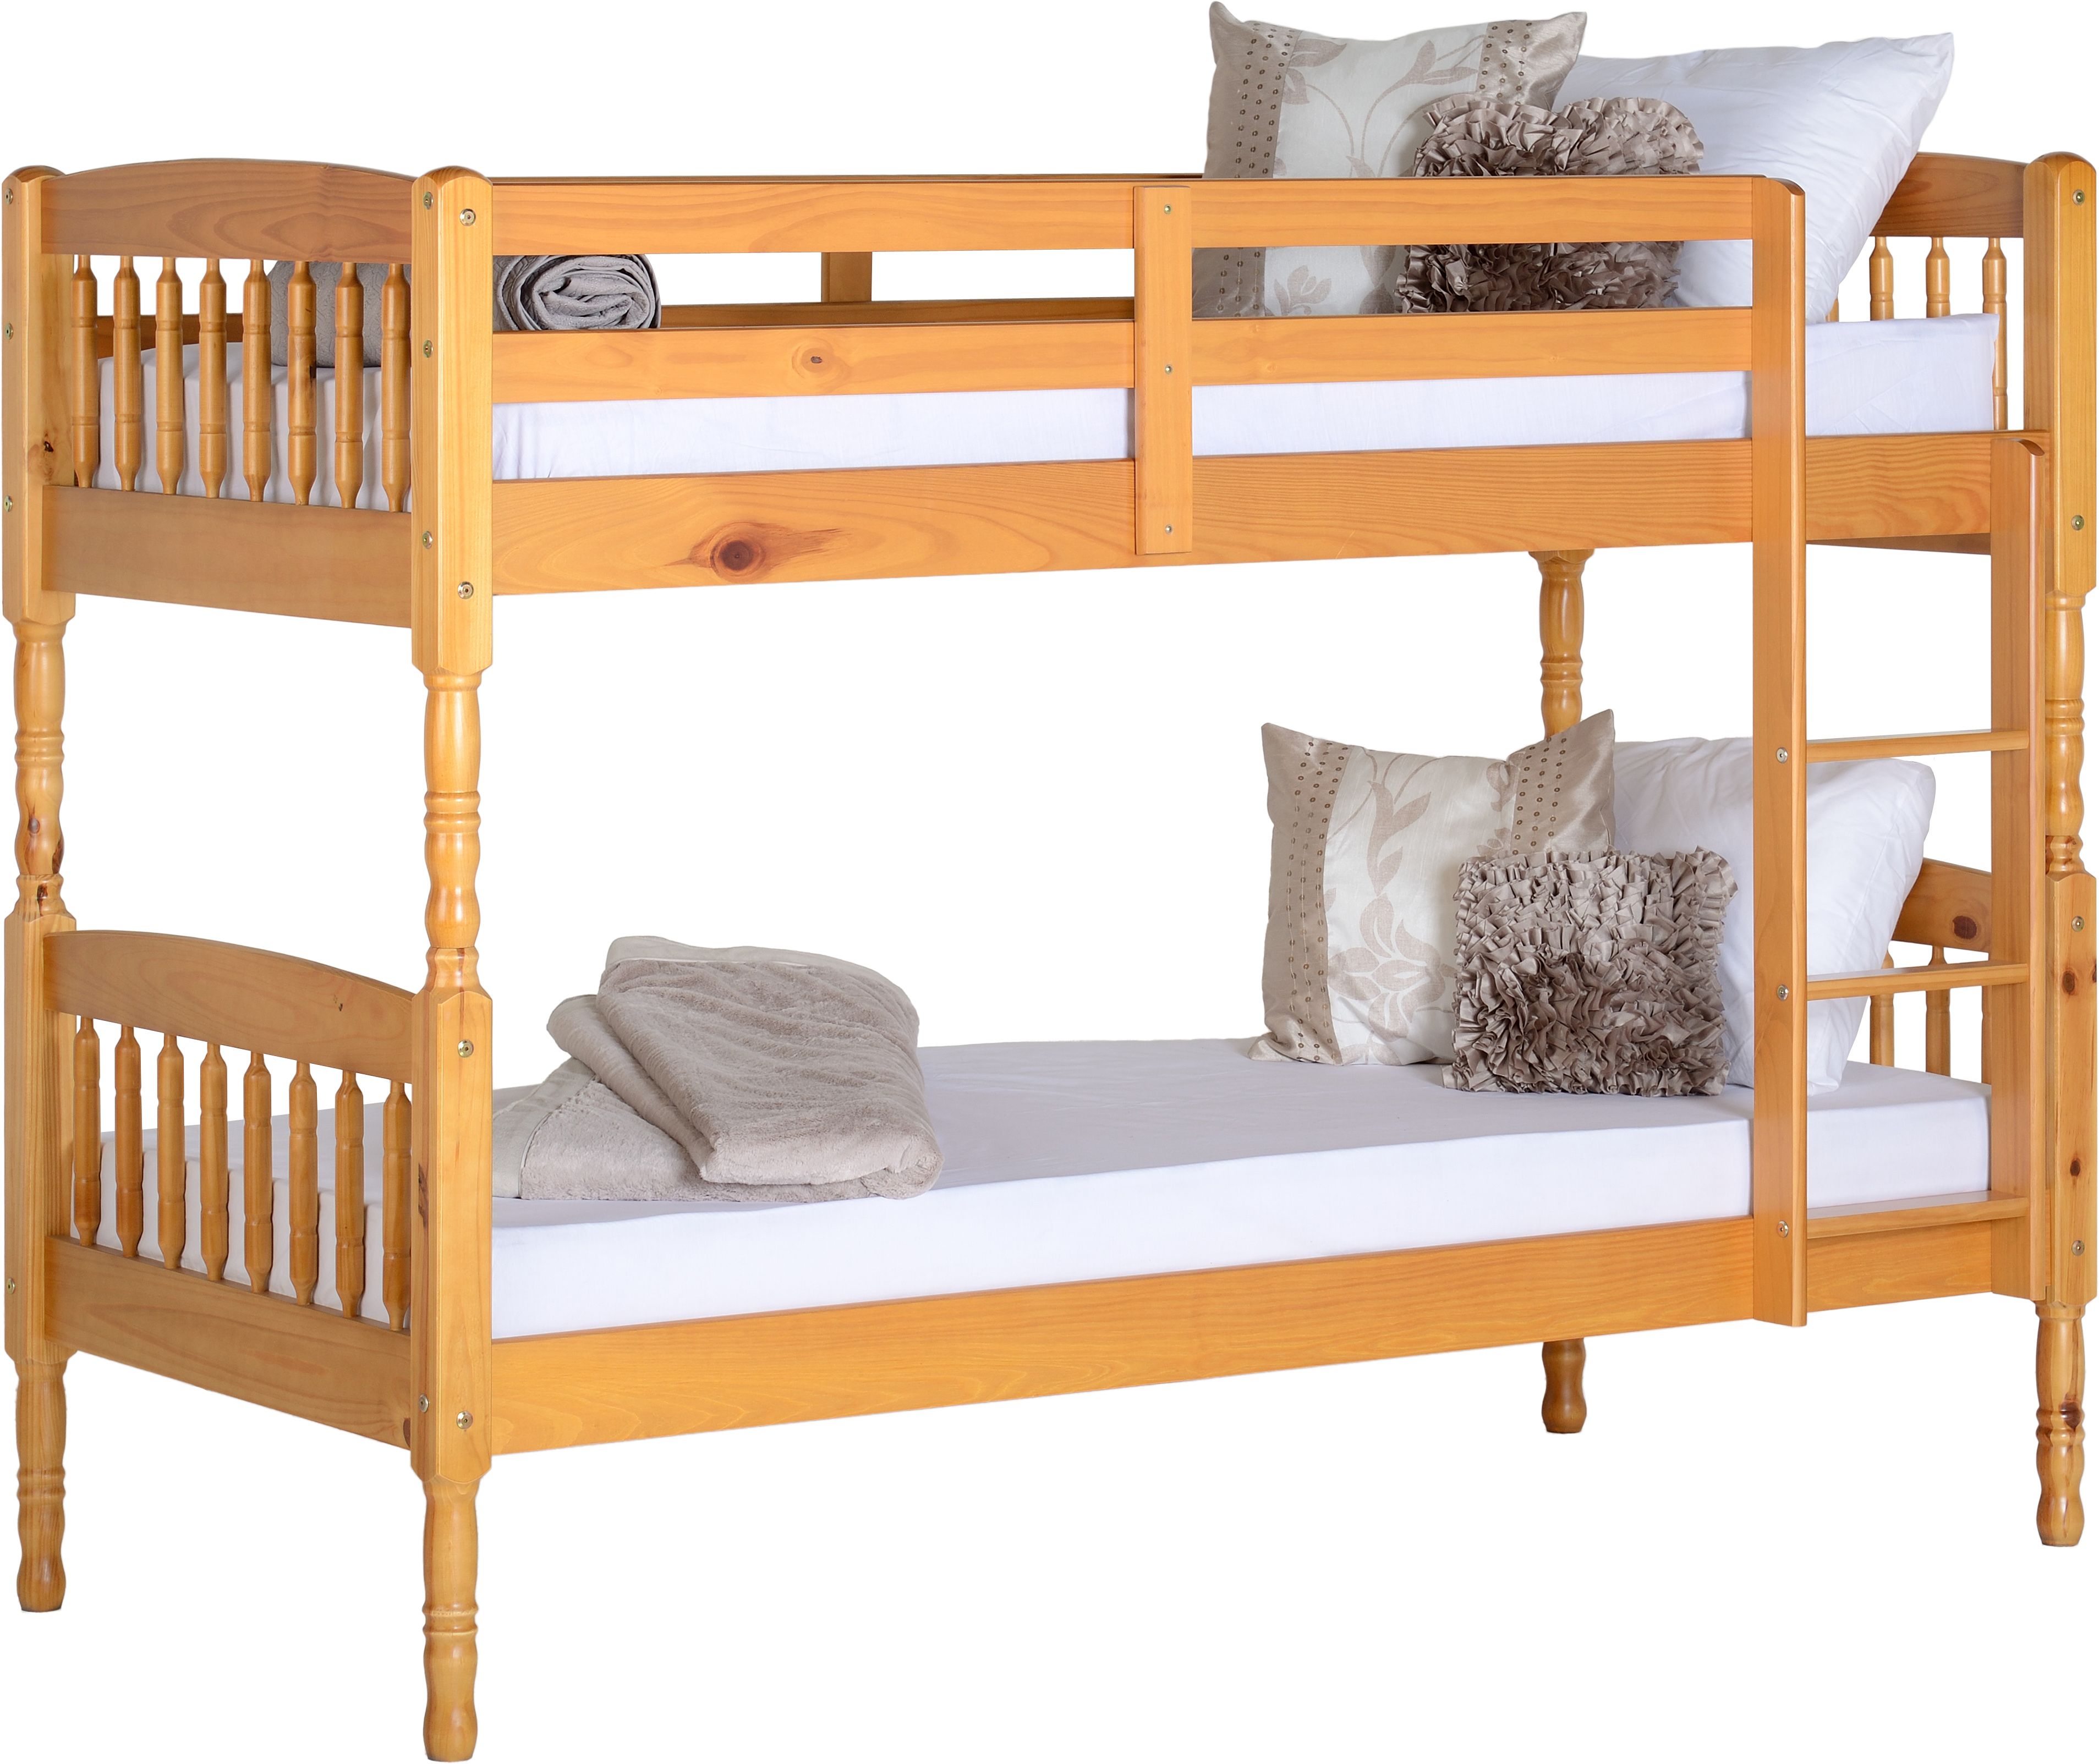 Image of Albany Single Bunk Bed in Antique Pine